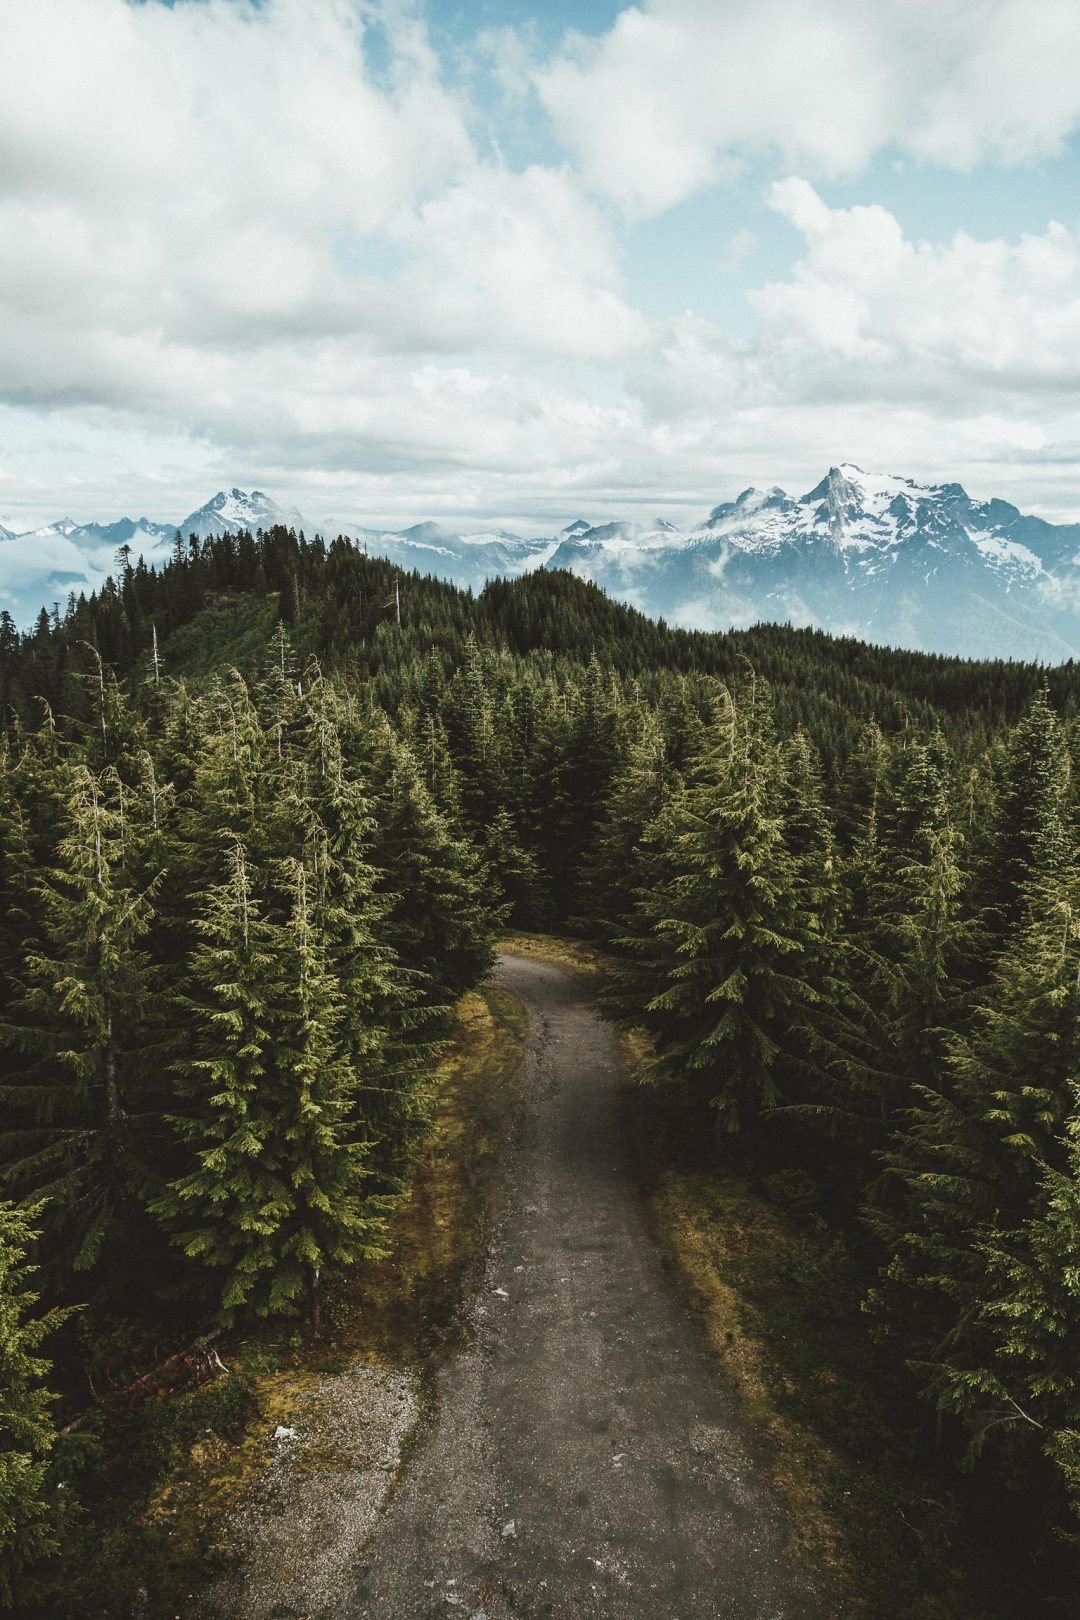 Mountain backgrounds for iPhone with forest